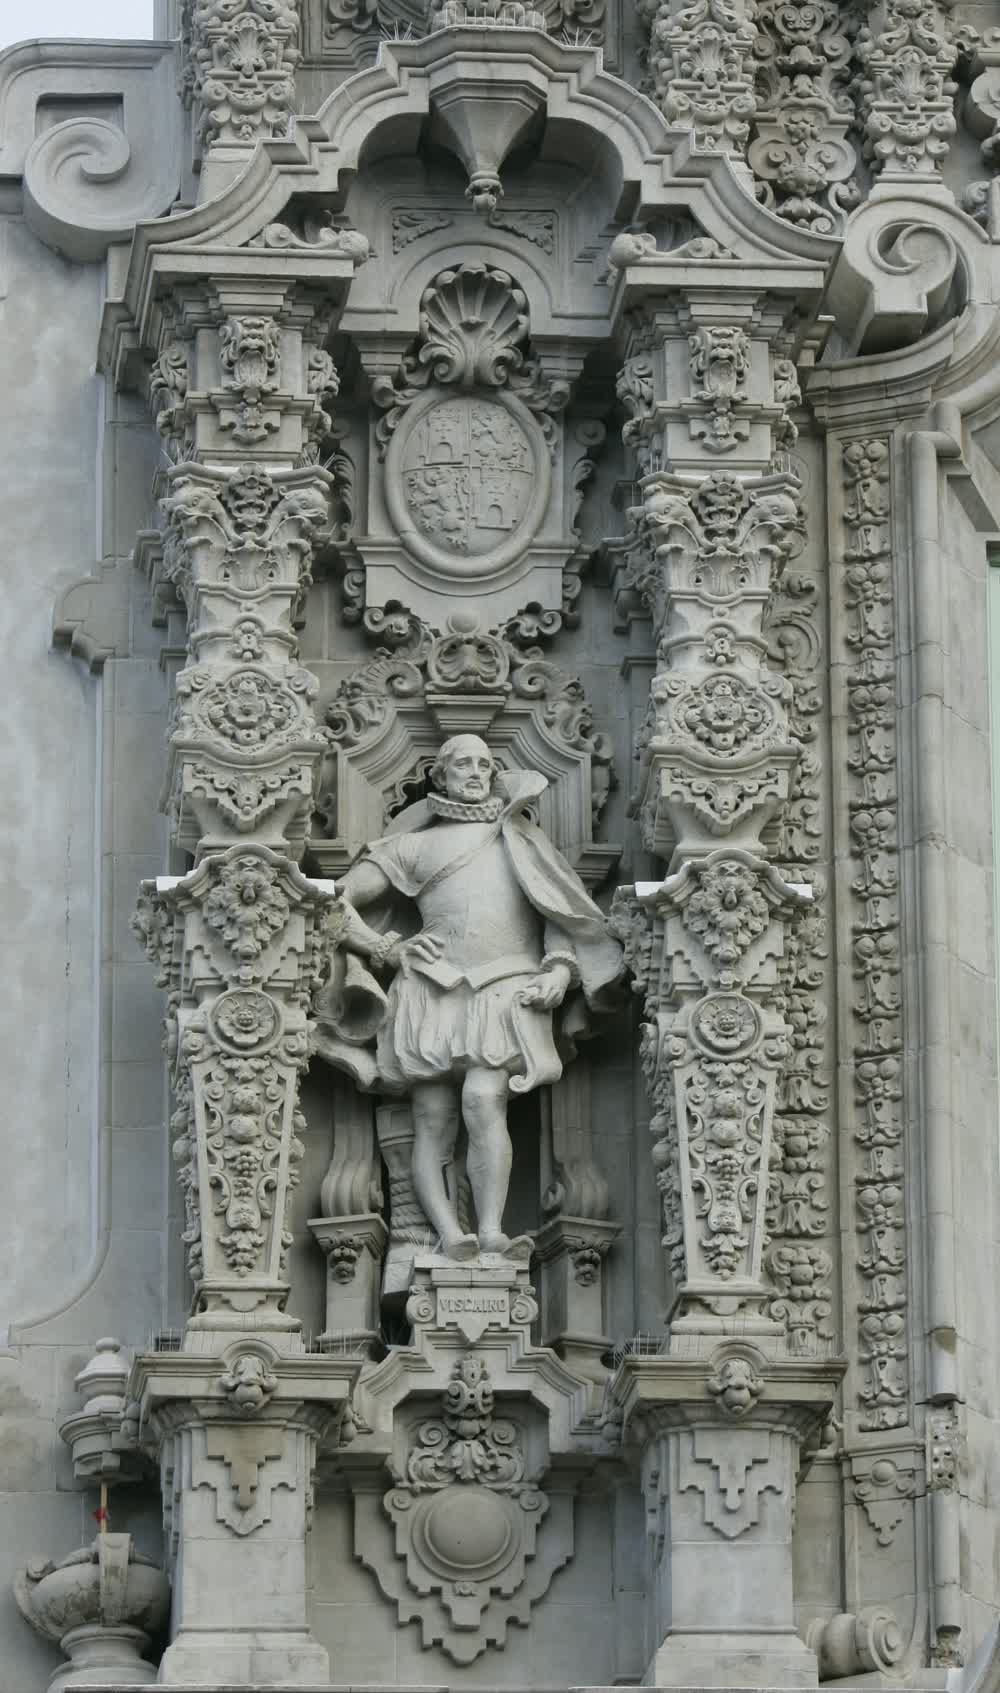 title: Spanish Statue and Ornate Architecture at Balboa Park